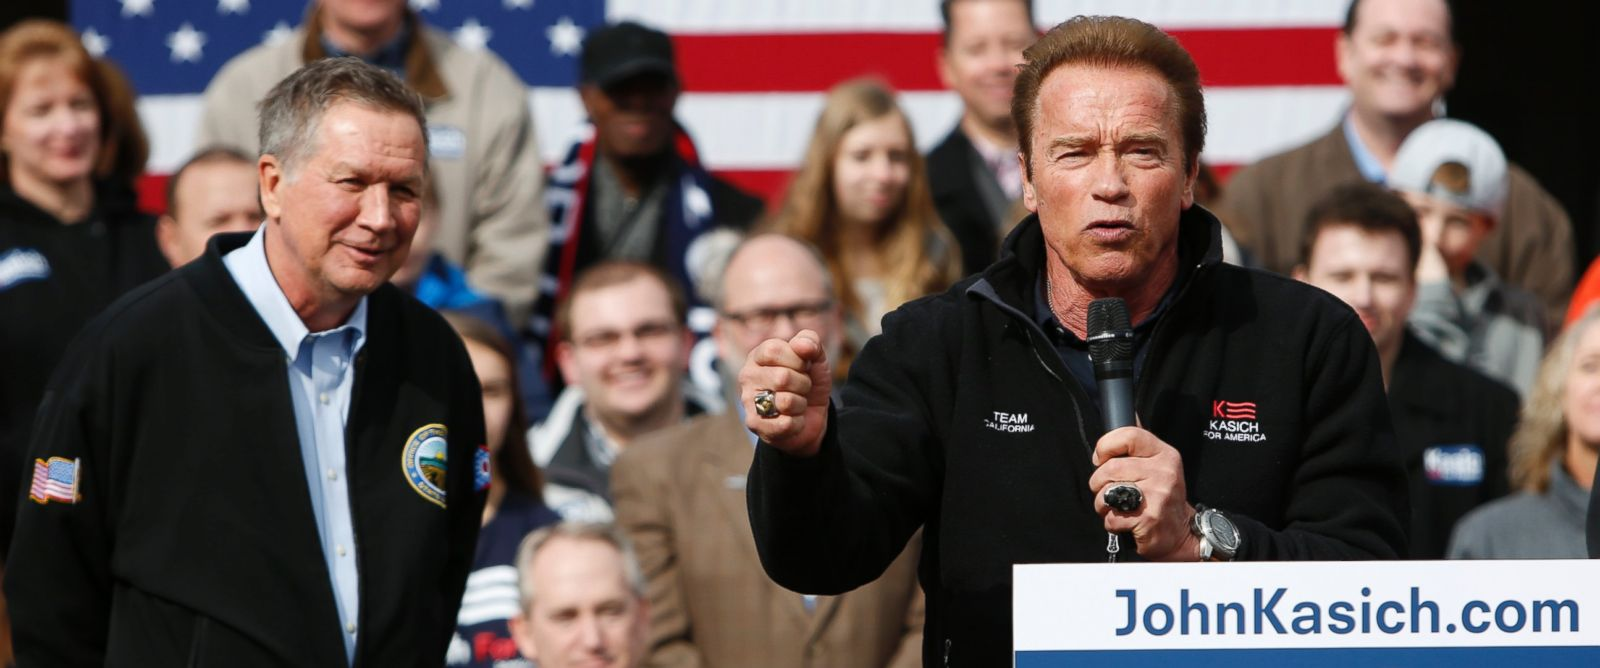 PHOTO: Former California Gov. Arnold Schwarzenegger, right, introduces Republican presidential candidate, Ohio Gov. John Kasich, during a campaign rally, March 6, 2016, in Columbus, Ohio.